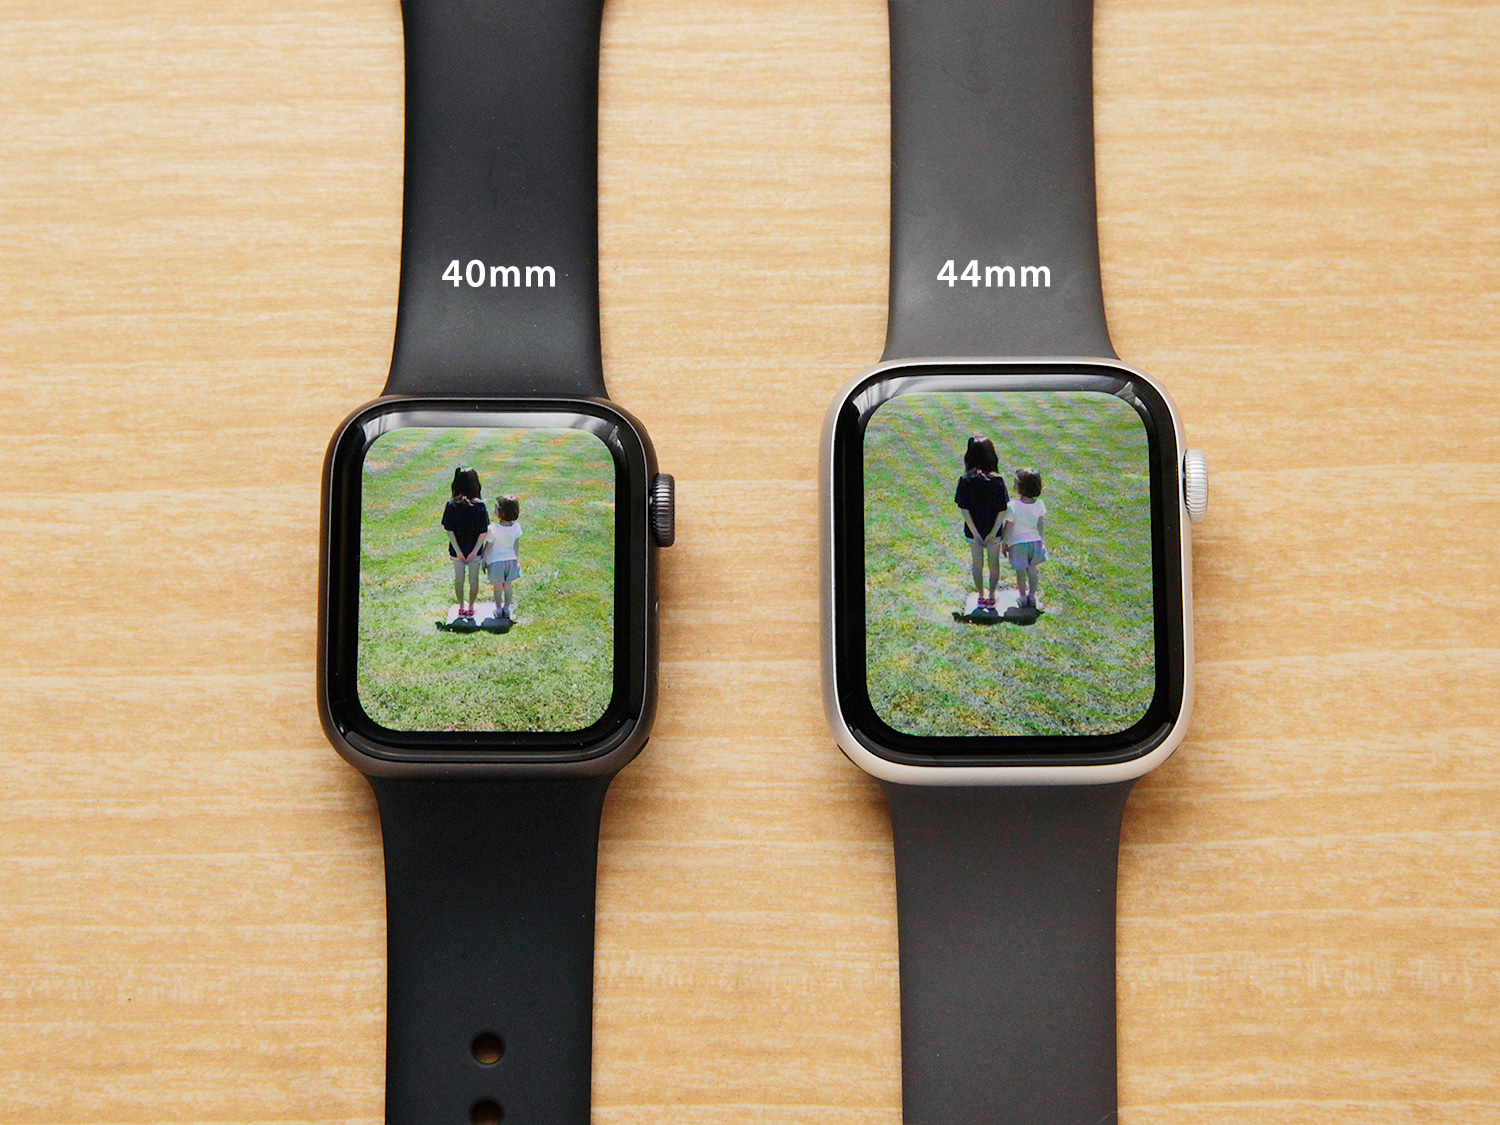 Apple Watch Seires 4の40mmと44mmサイズ比較(写真)